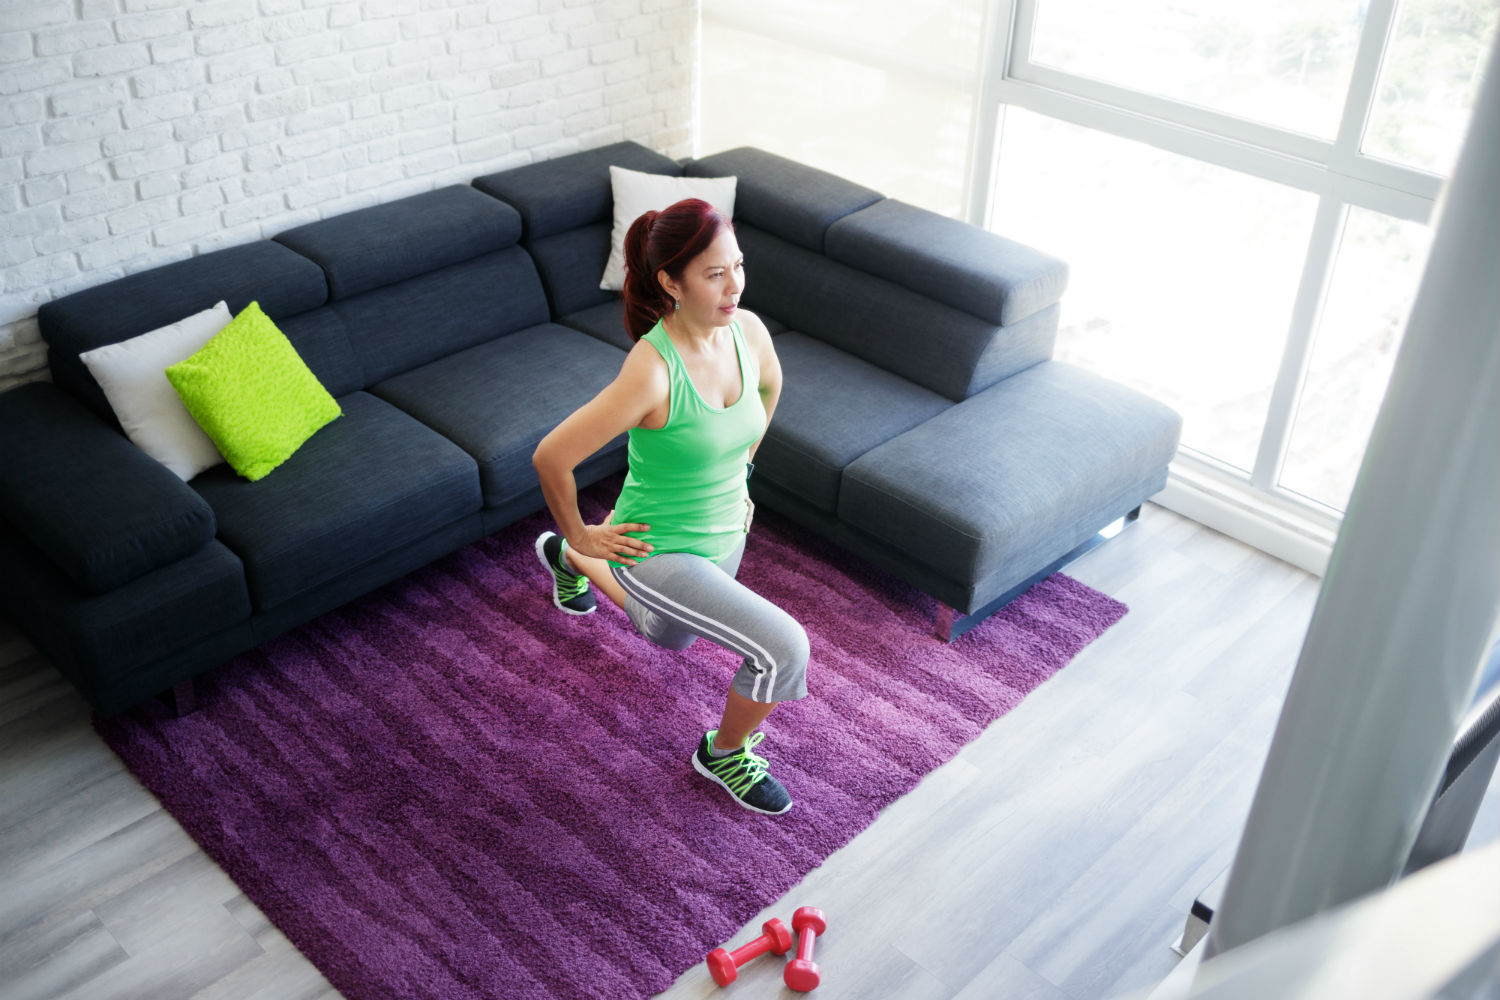 5 Exercises To Do At Home To Lose Weight